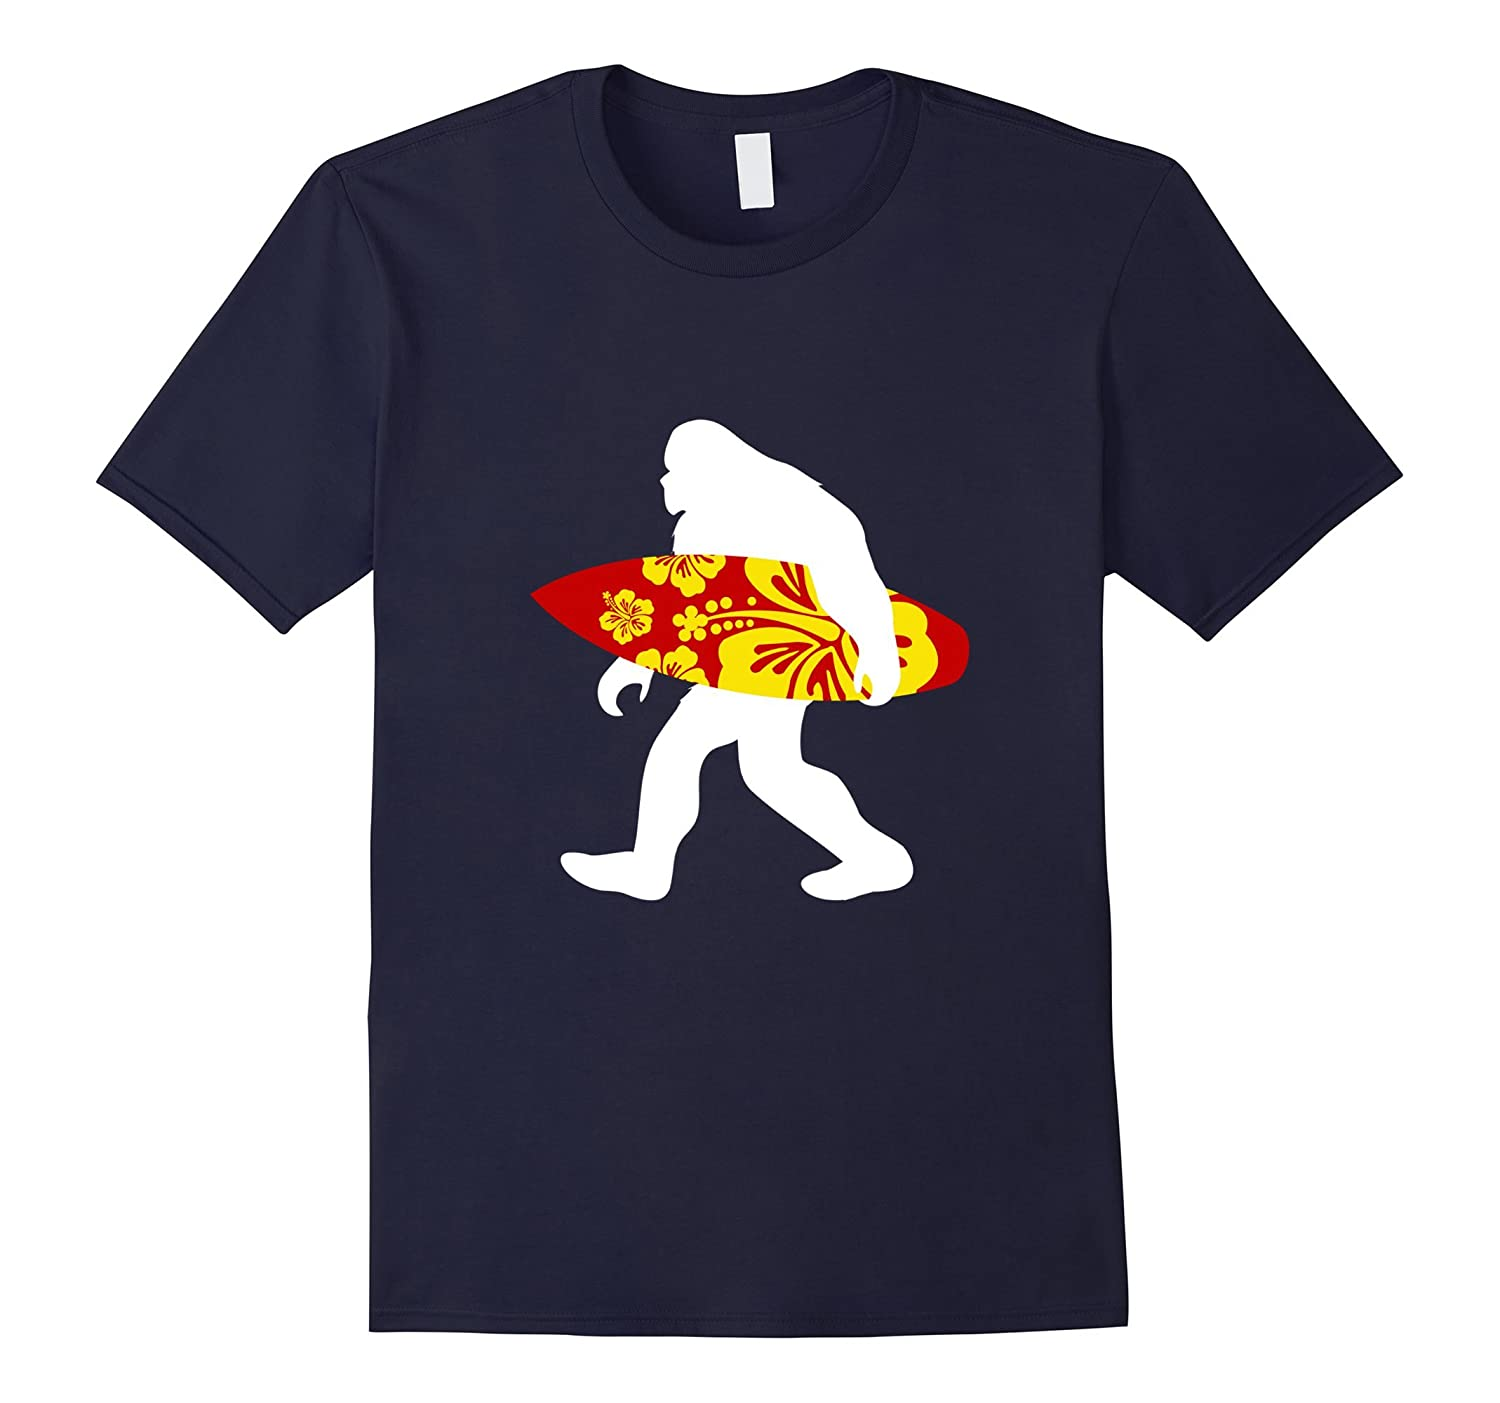 Surfer Dude Bigfoot T-Shirt Holding a Surfboard Tshirt-TJ